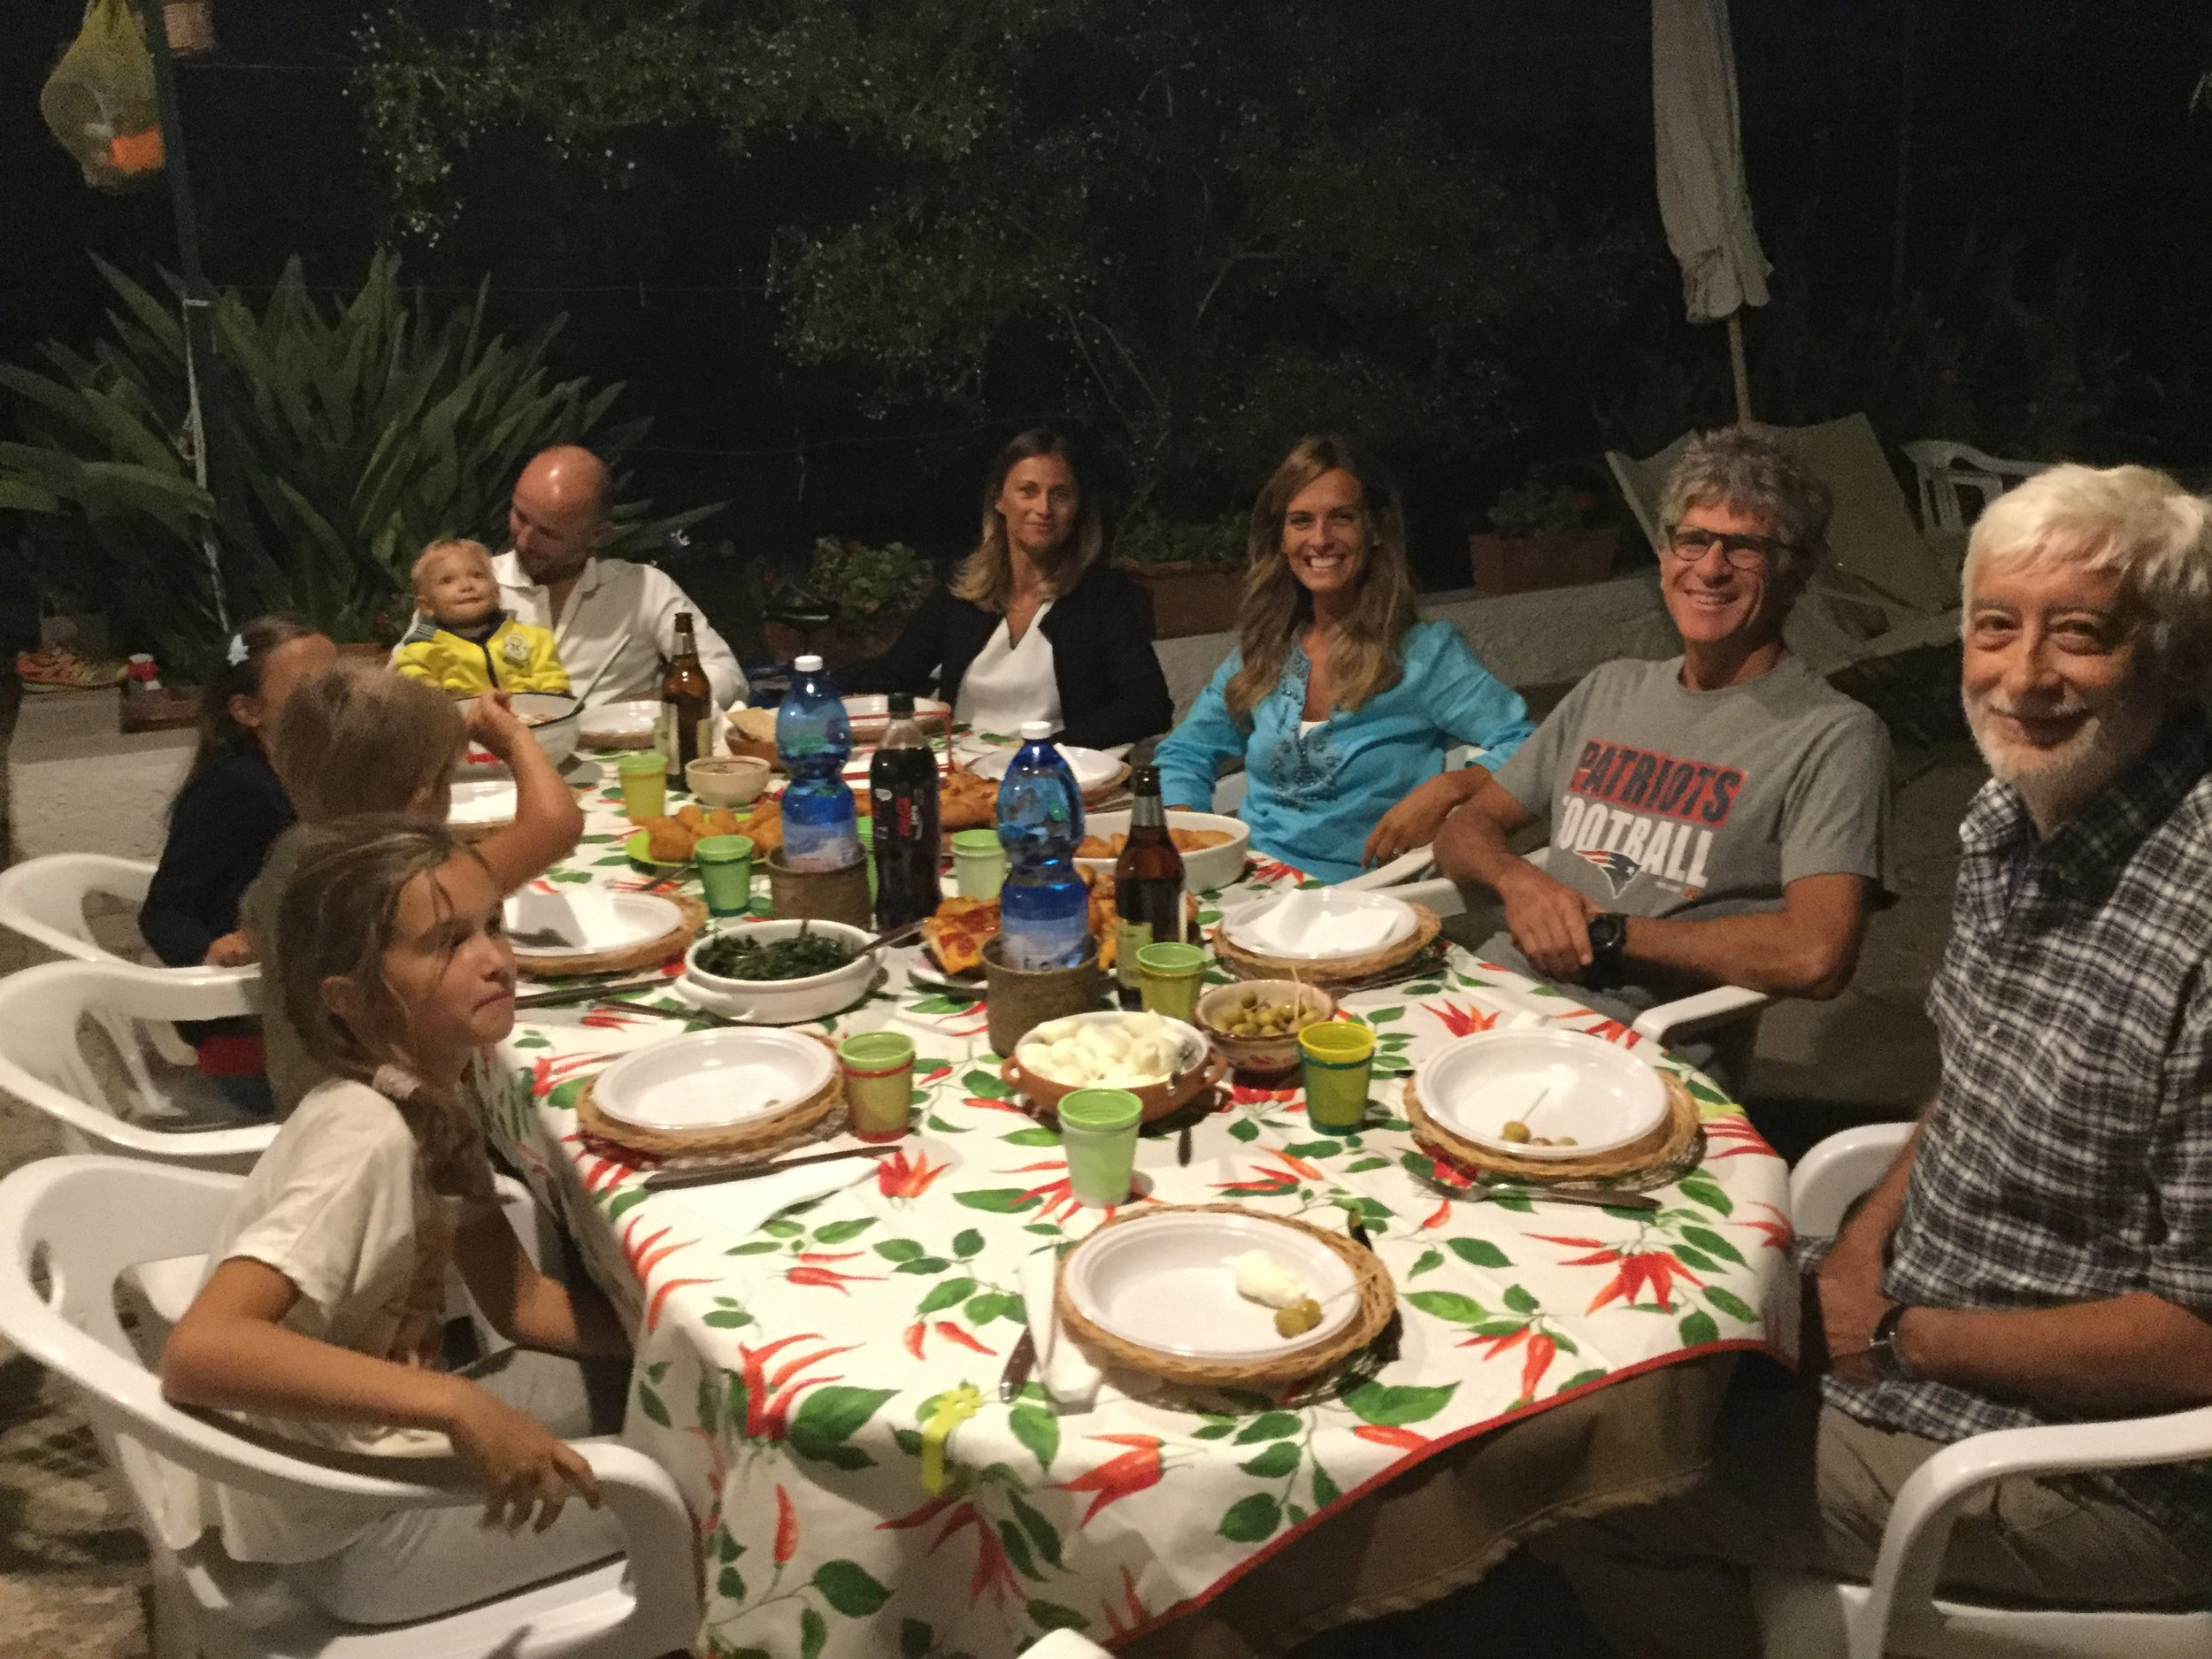 Enjoying a dinner at Corrado's Molfetta house. It has been in their family for several generations and sits in the middle of a large olive grove.